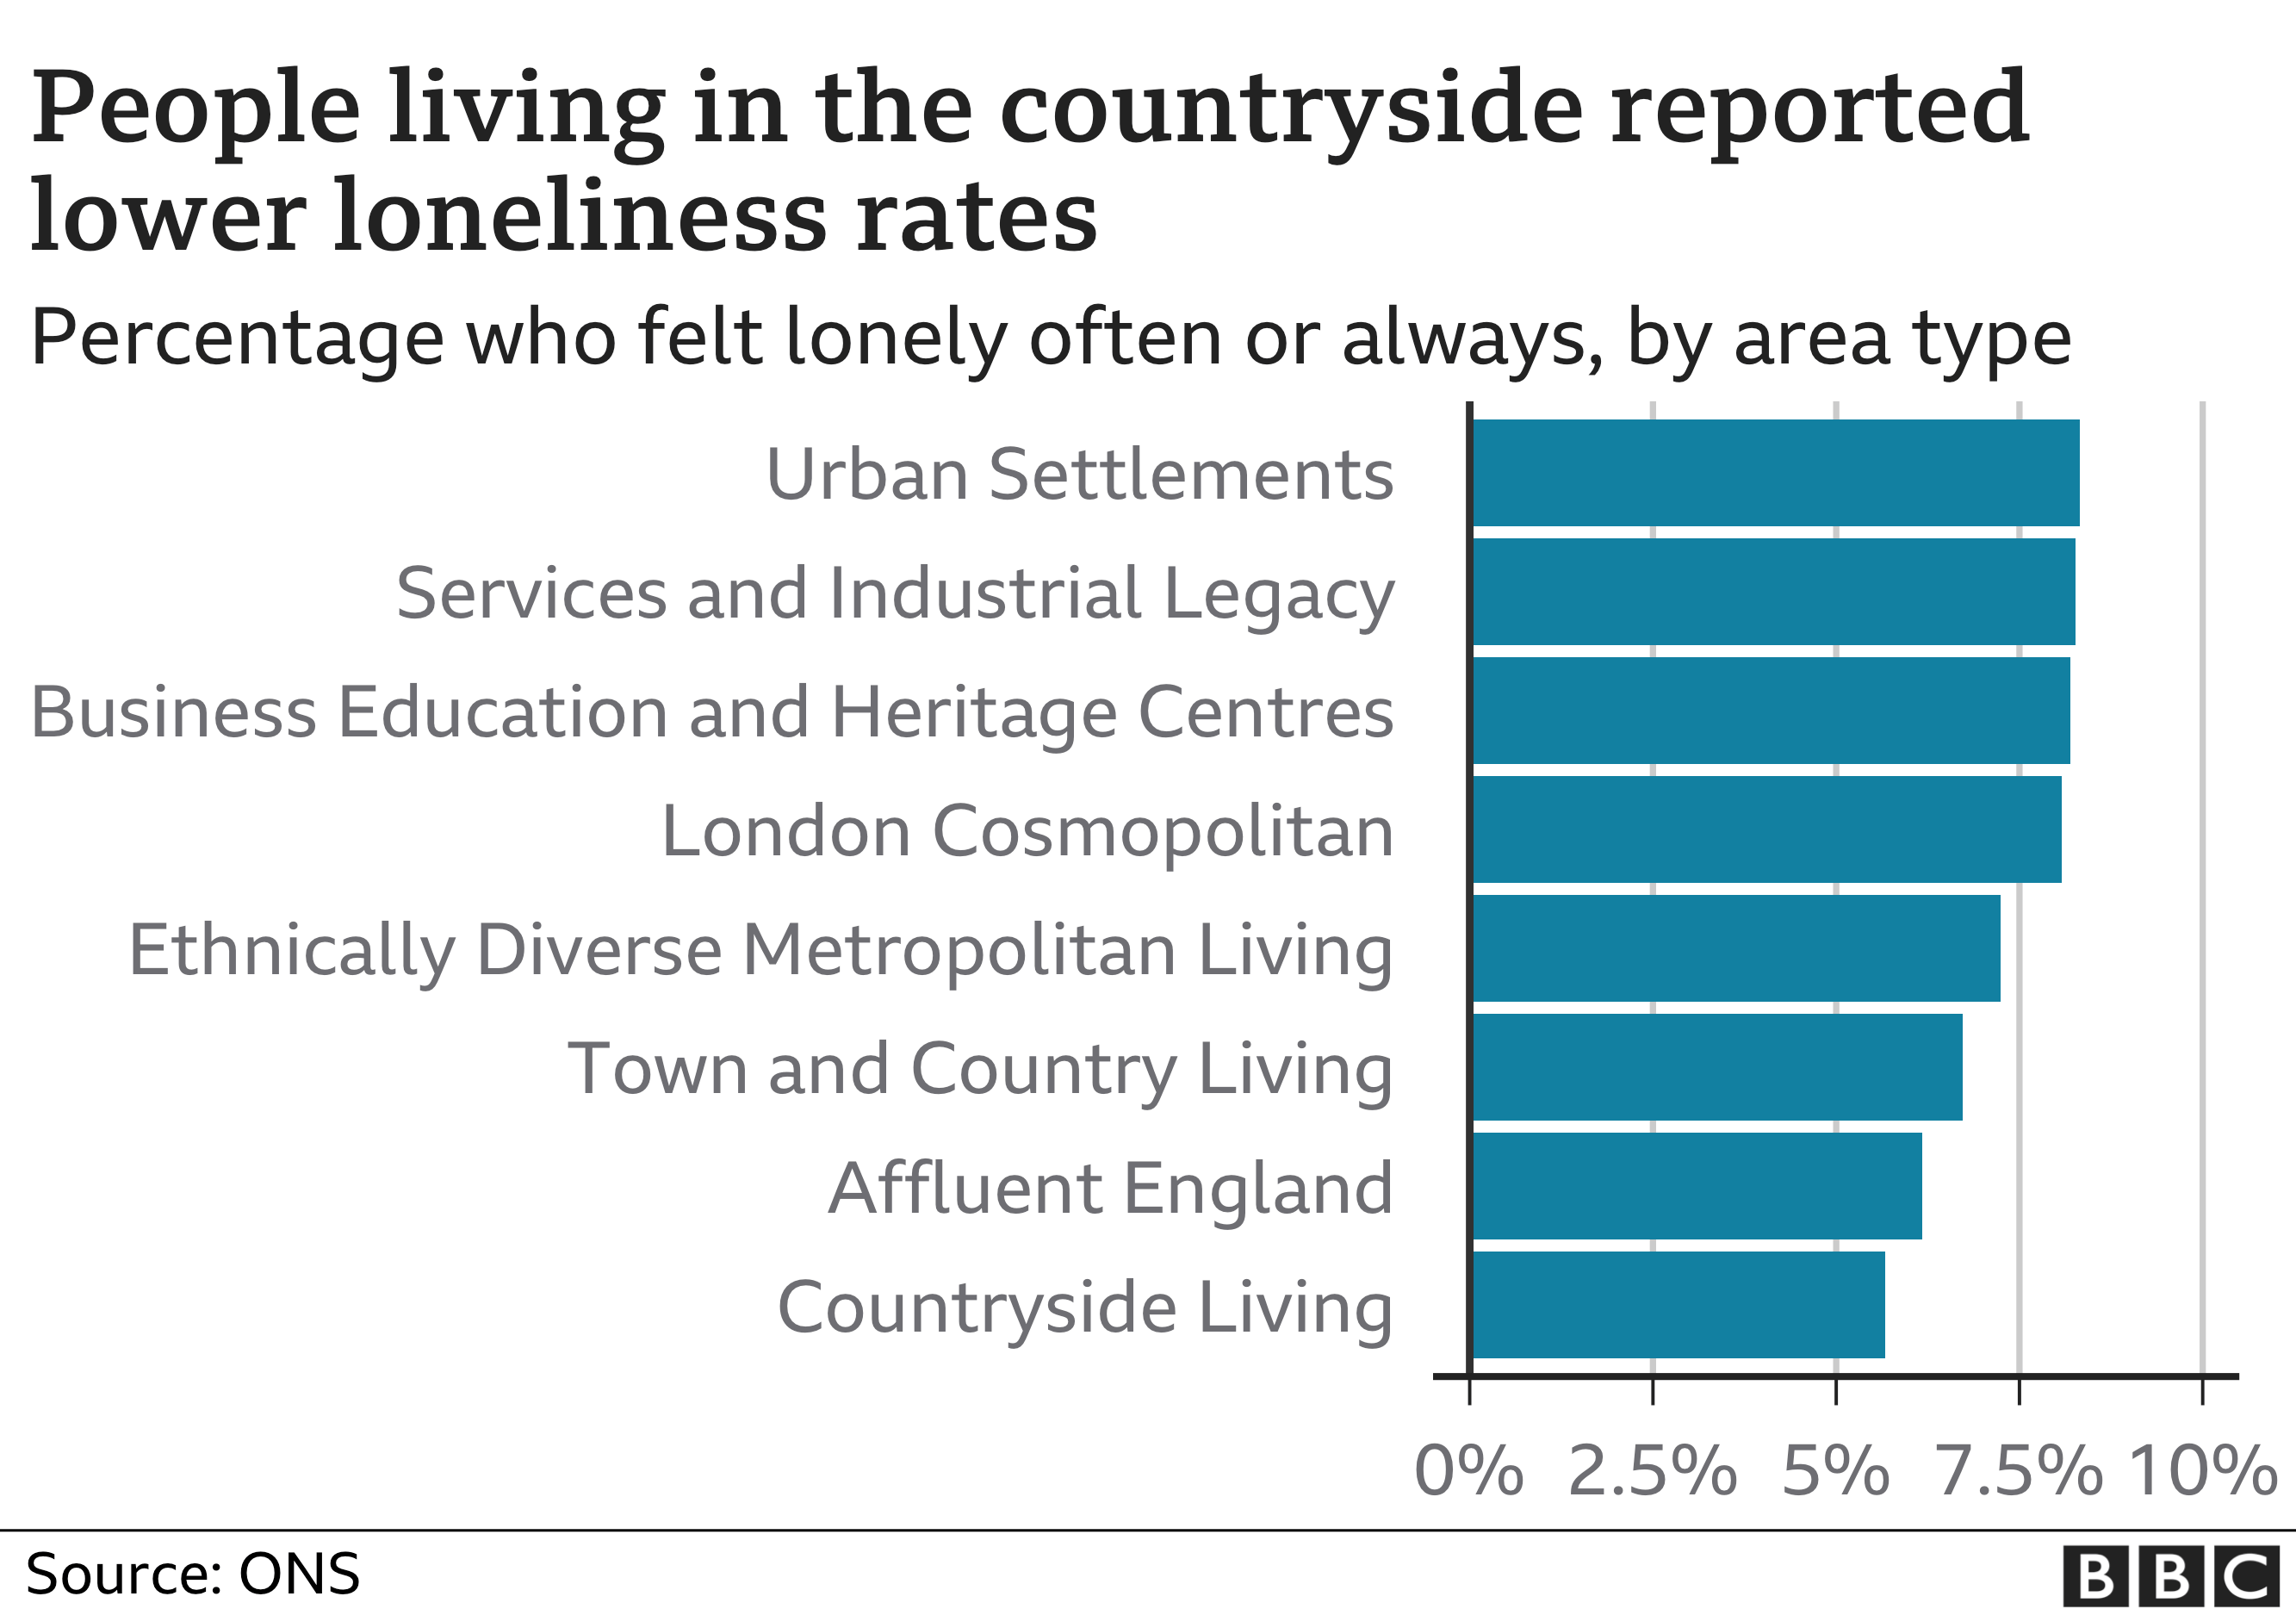 Chart shows people more likely to feel lonely in urban areas